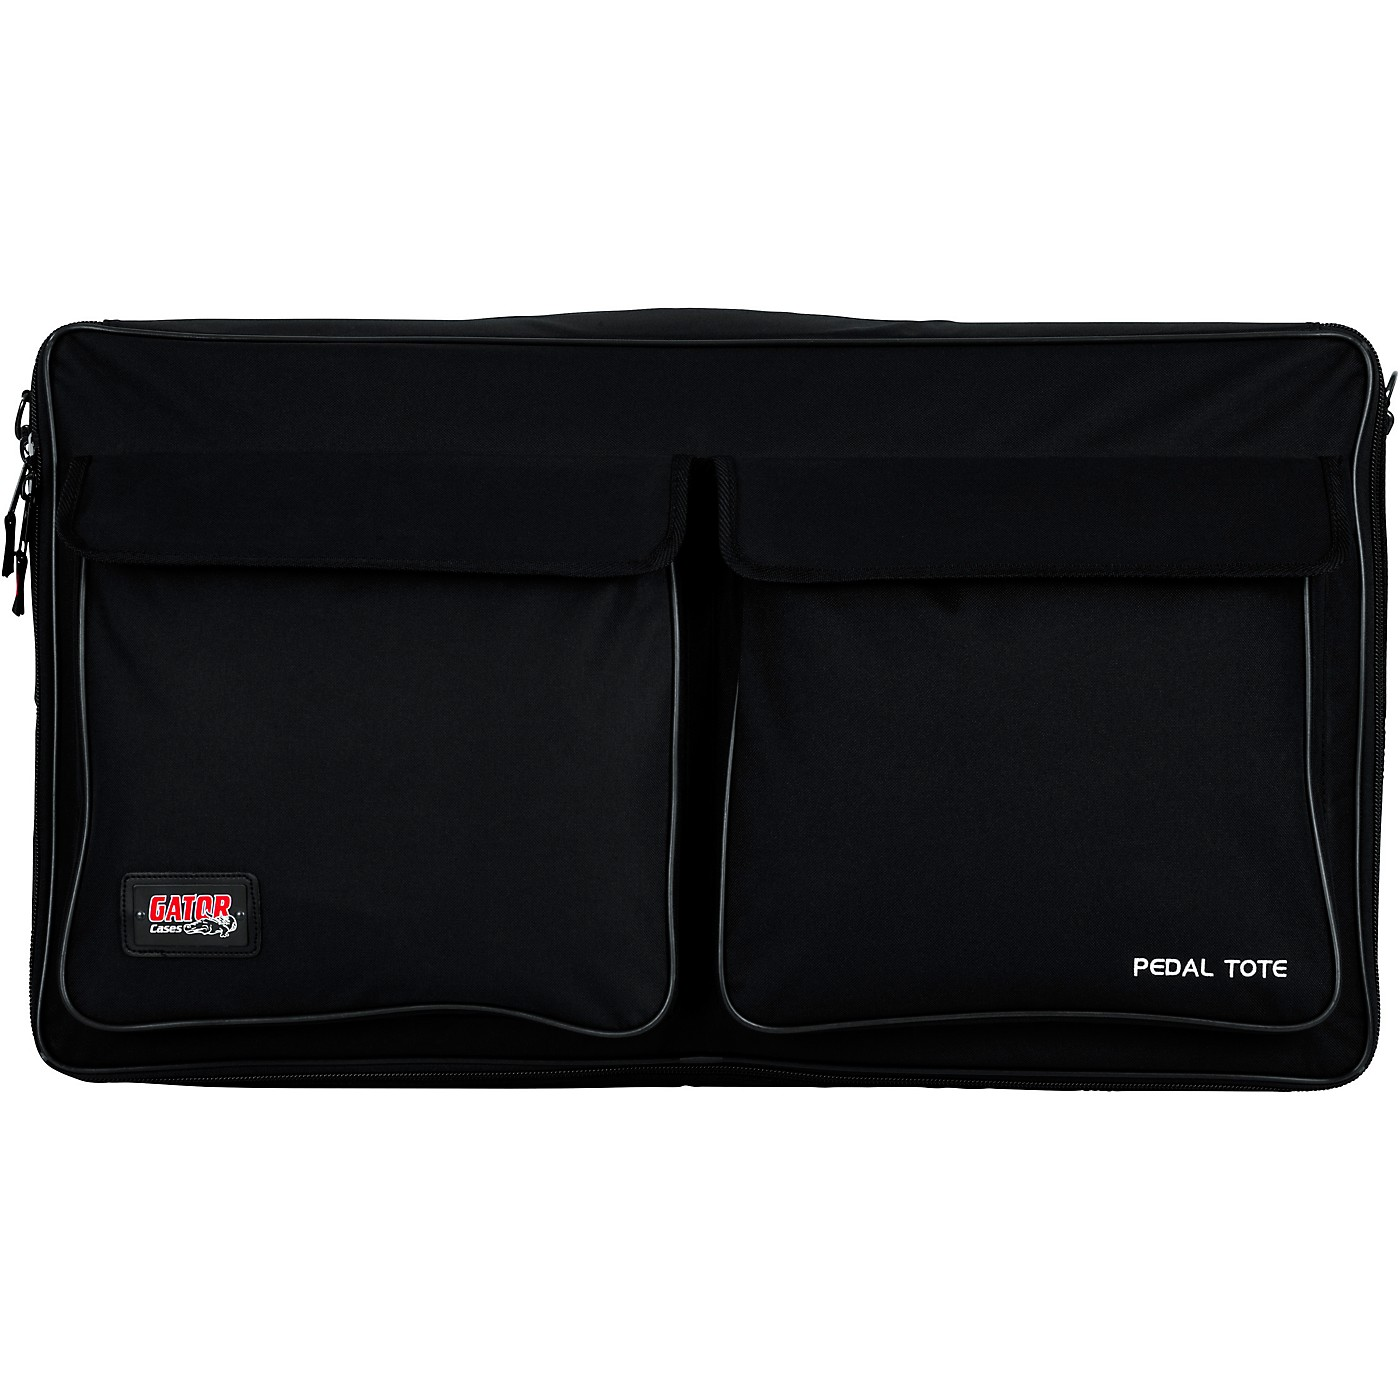 Gator GPT-PRO Pedal Tote Pro Pedalboard with Carry Bag thumbnail